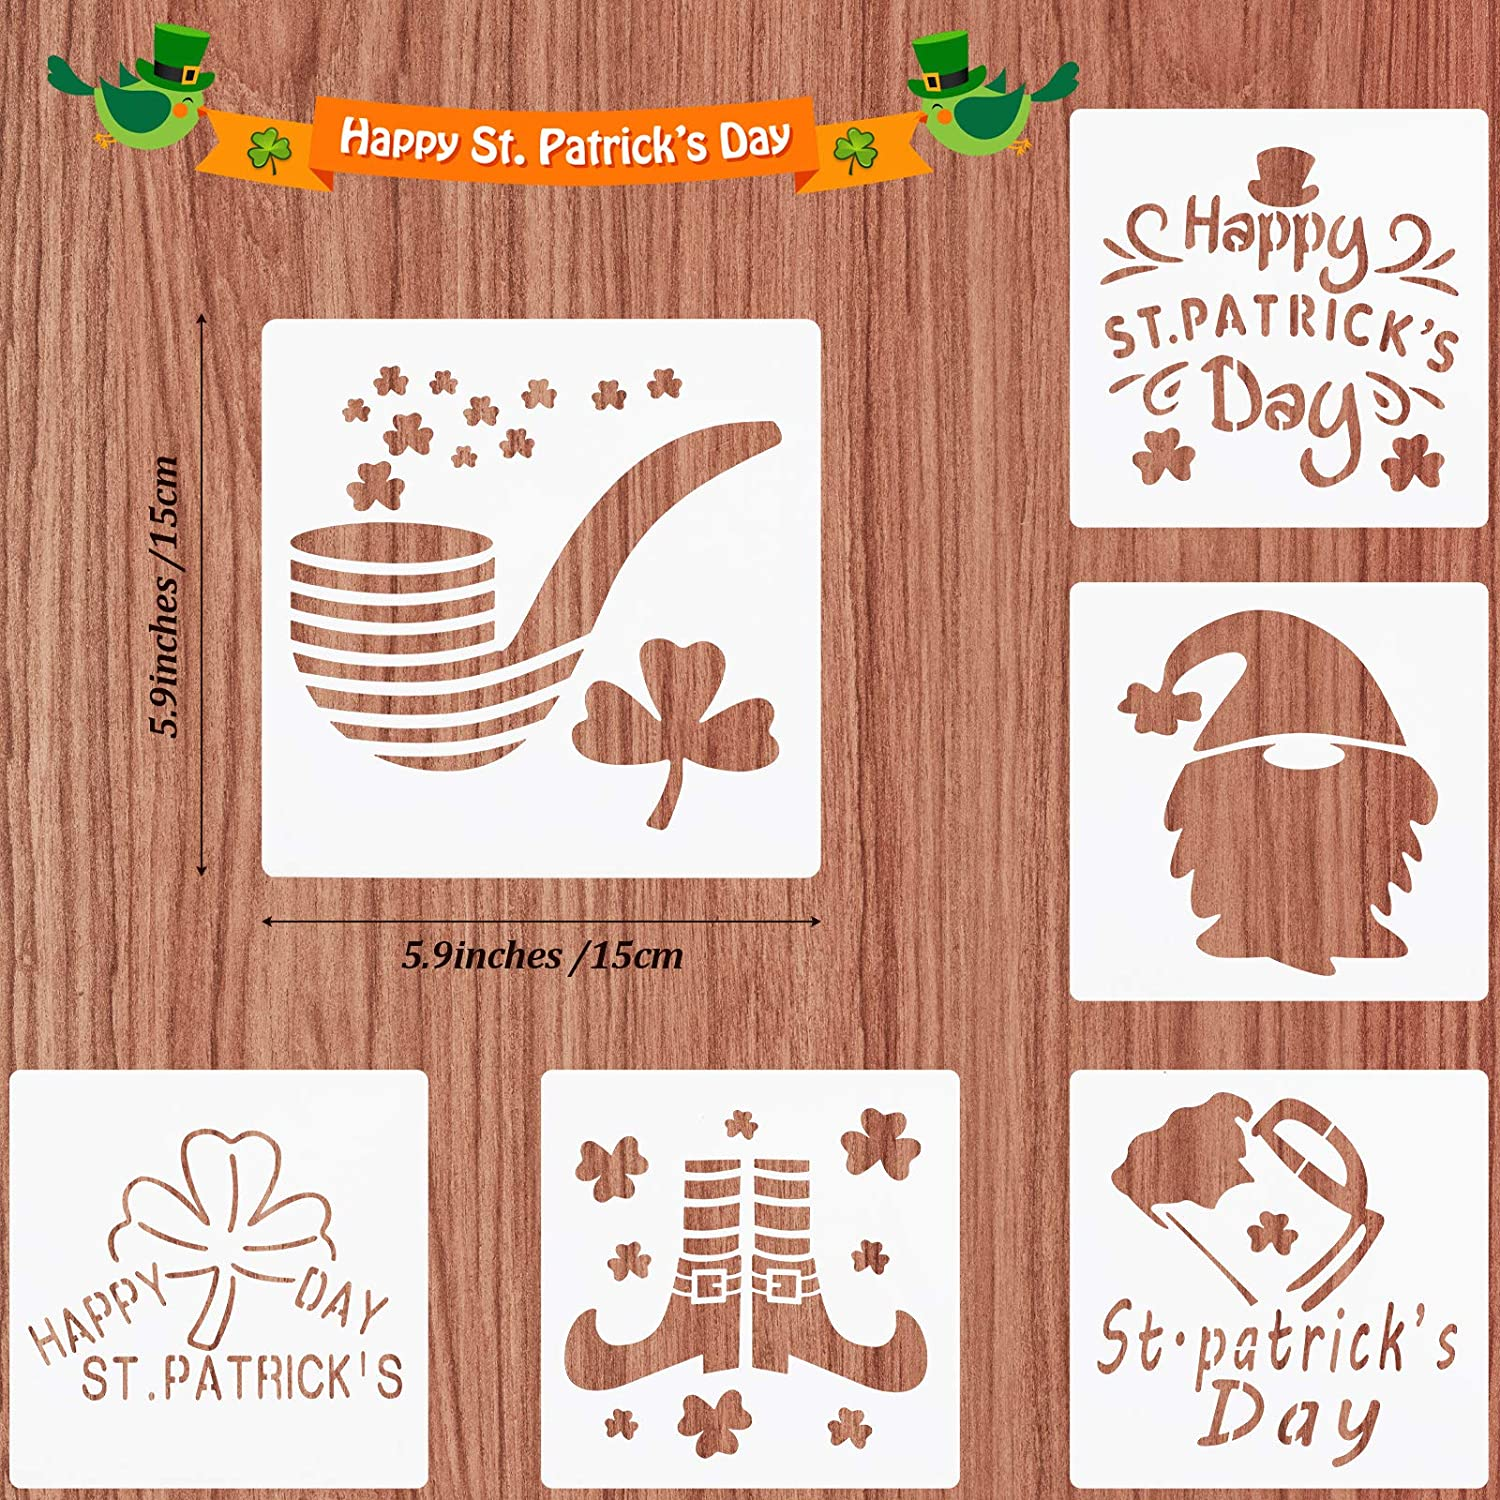 24 Pieces St Patricks Day Painting Stencils Shamrock Clover Painting Templates Reusable Plastic Drawing Stencils for Craft Window Glass Wall Door Card Scrapbook Notebook Holiday Art 4 x 4 Inch